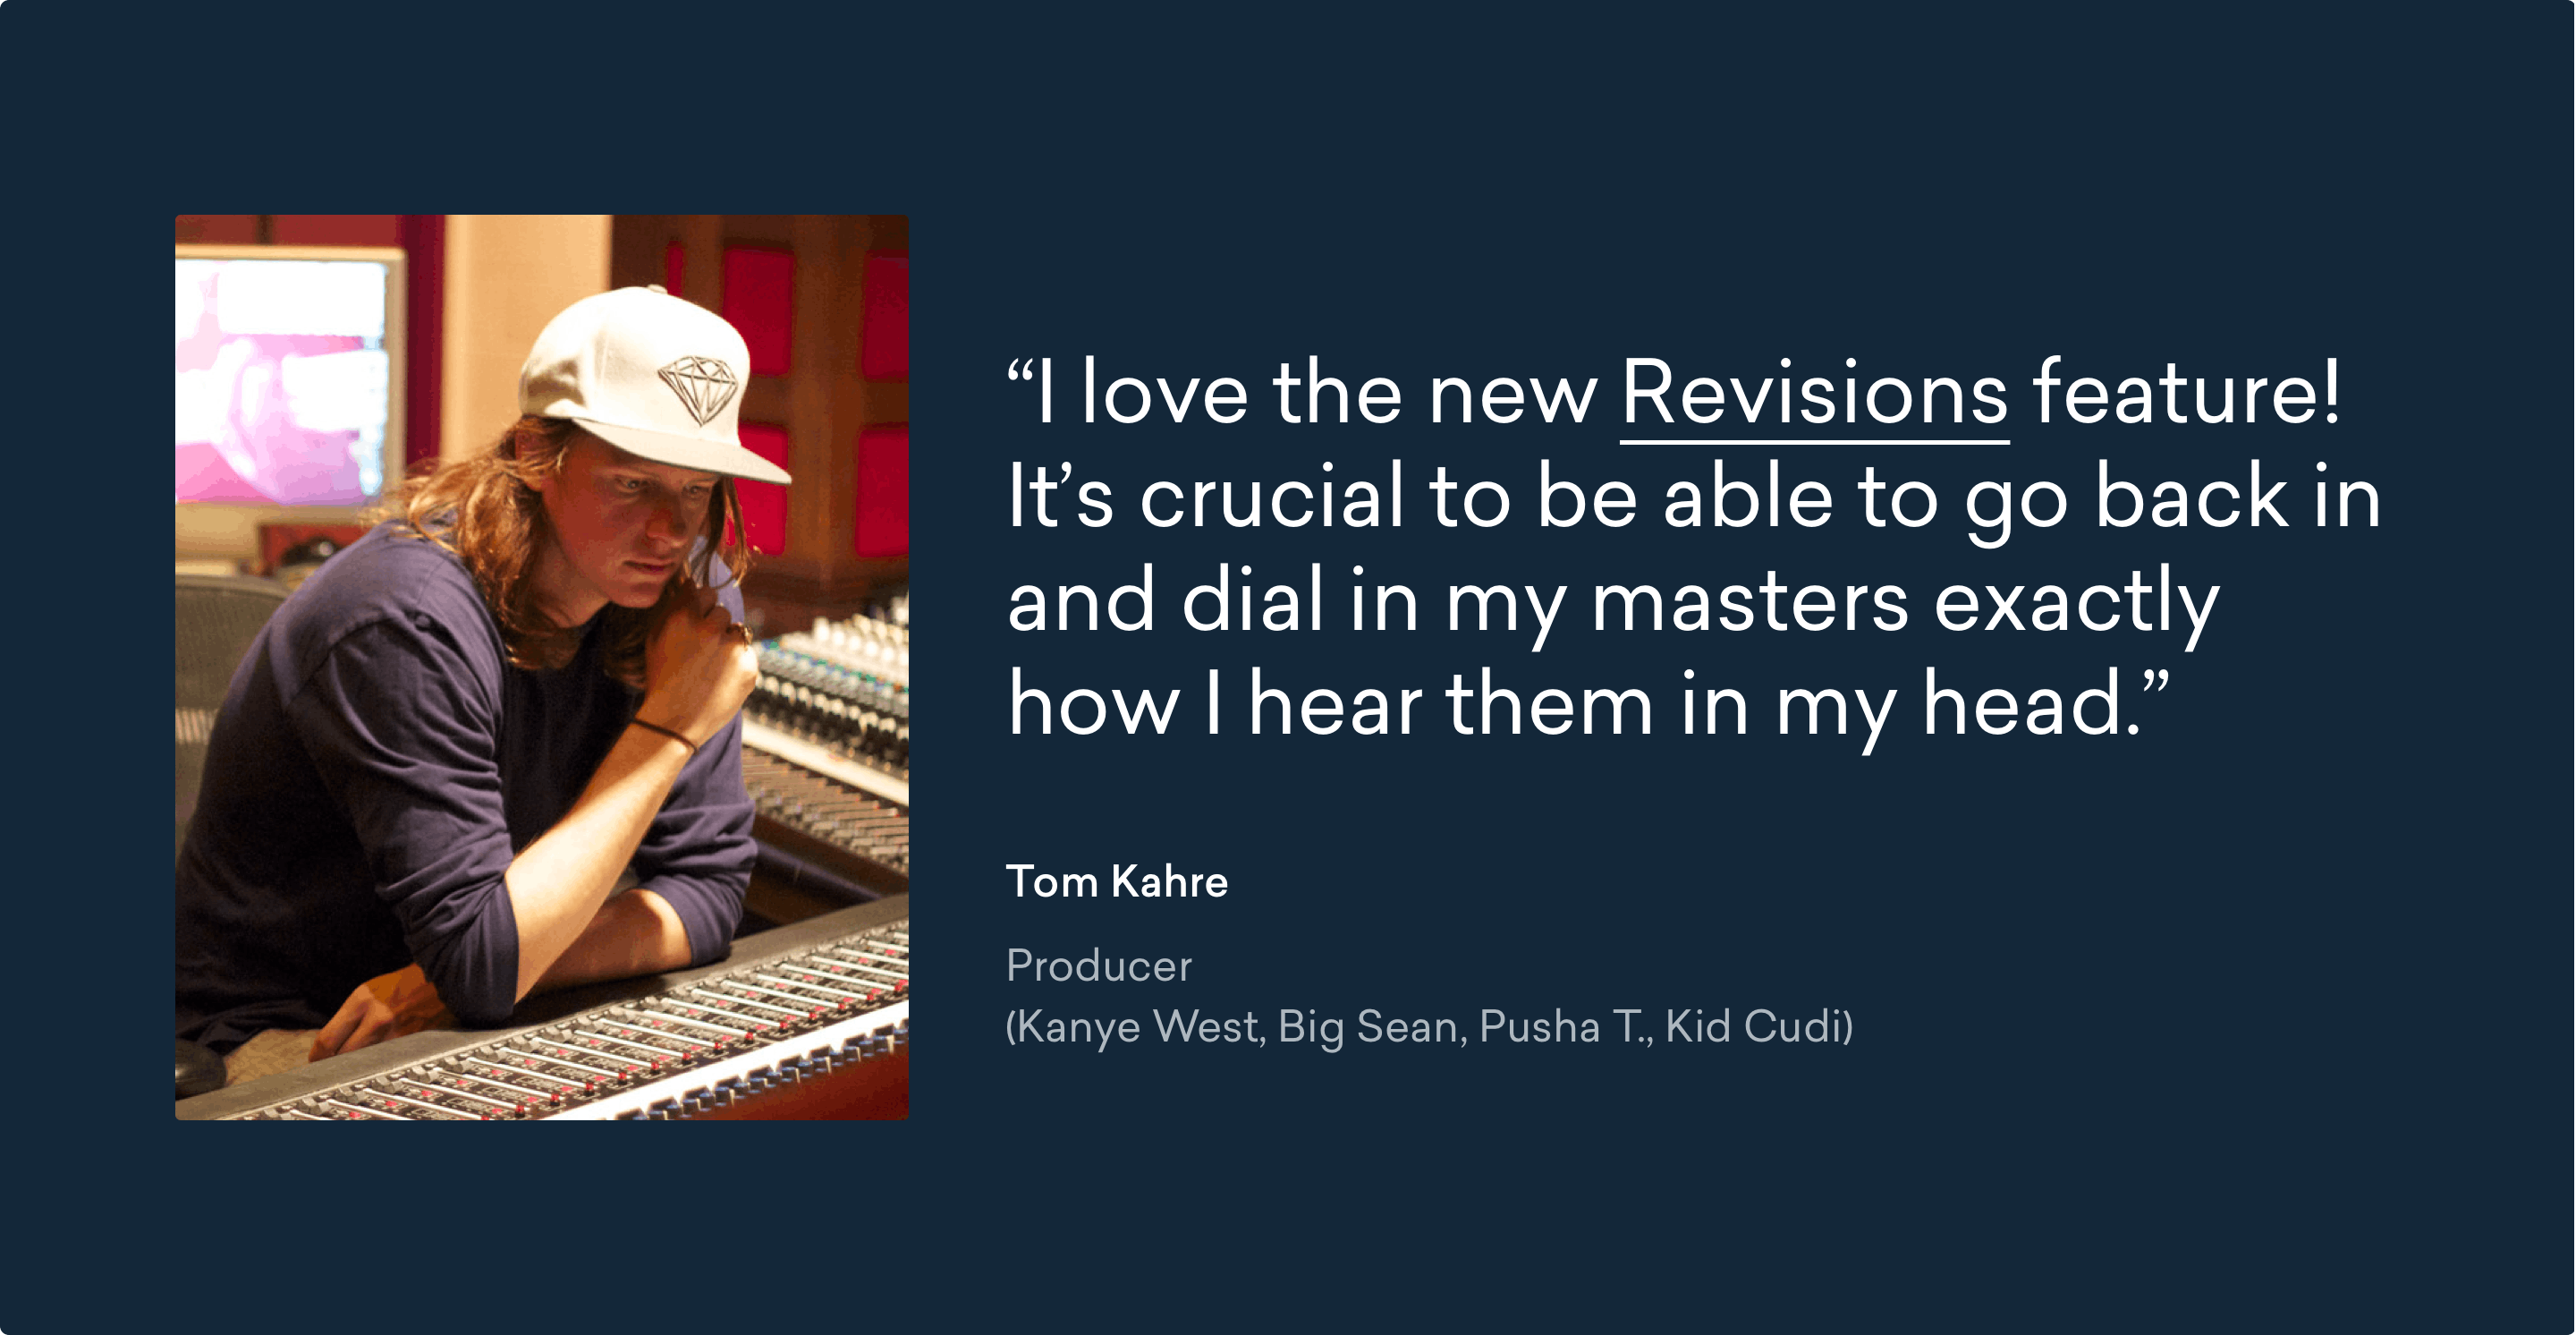 """I love the new Revisions feature! It's crucial to be able to go back in and dial in my masters exactly how I hear them in my head.""  -Tom Kahre, Producer (Kanye West, Big Sean, Pusha T., Kid Kudi)"